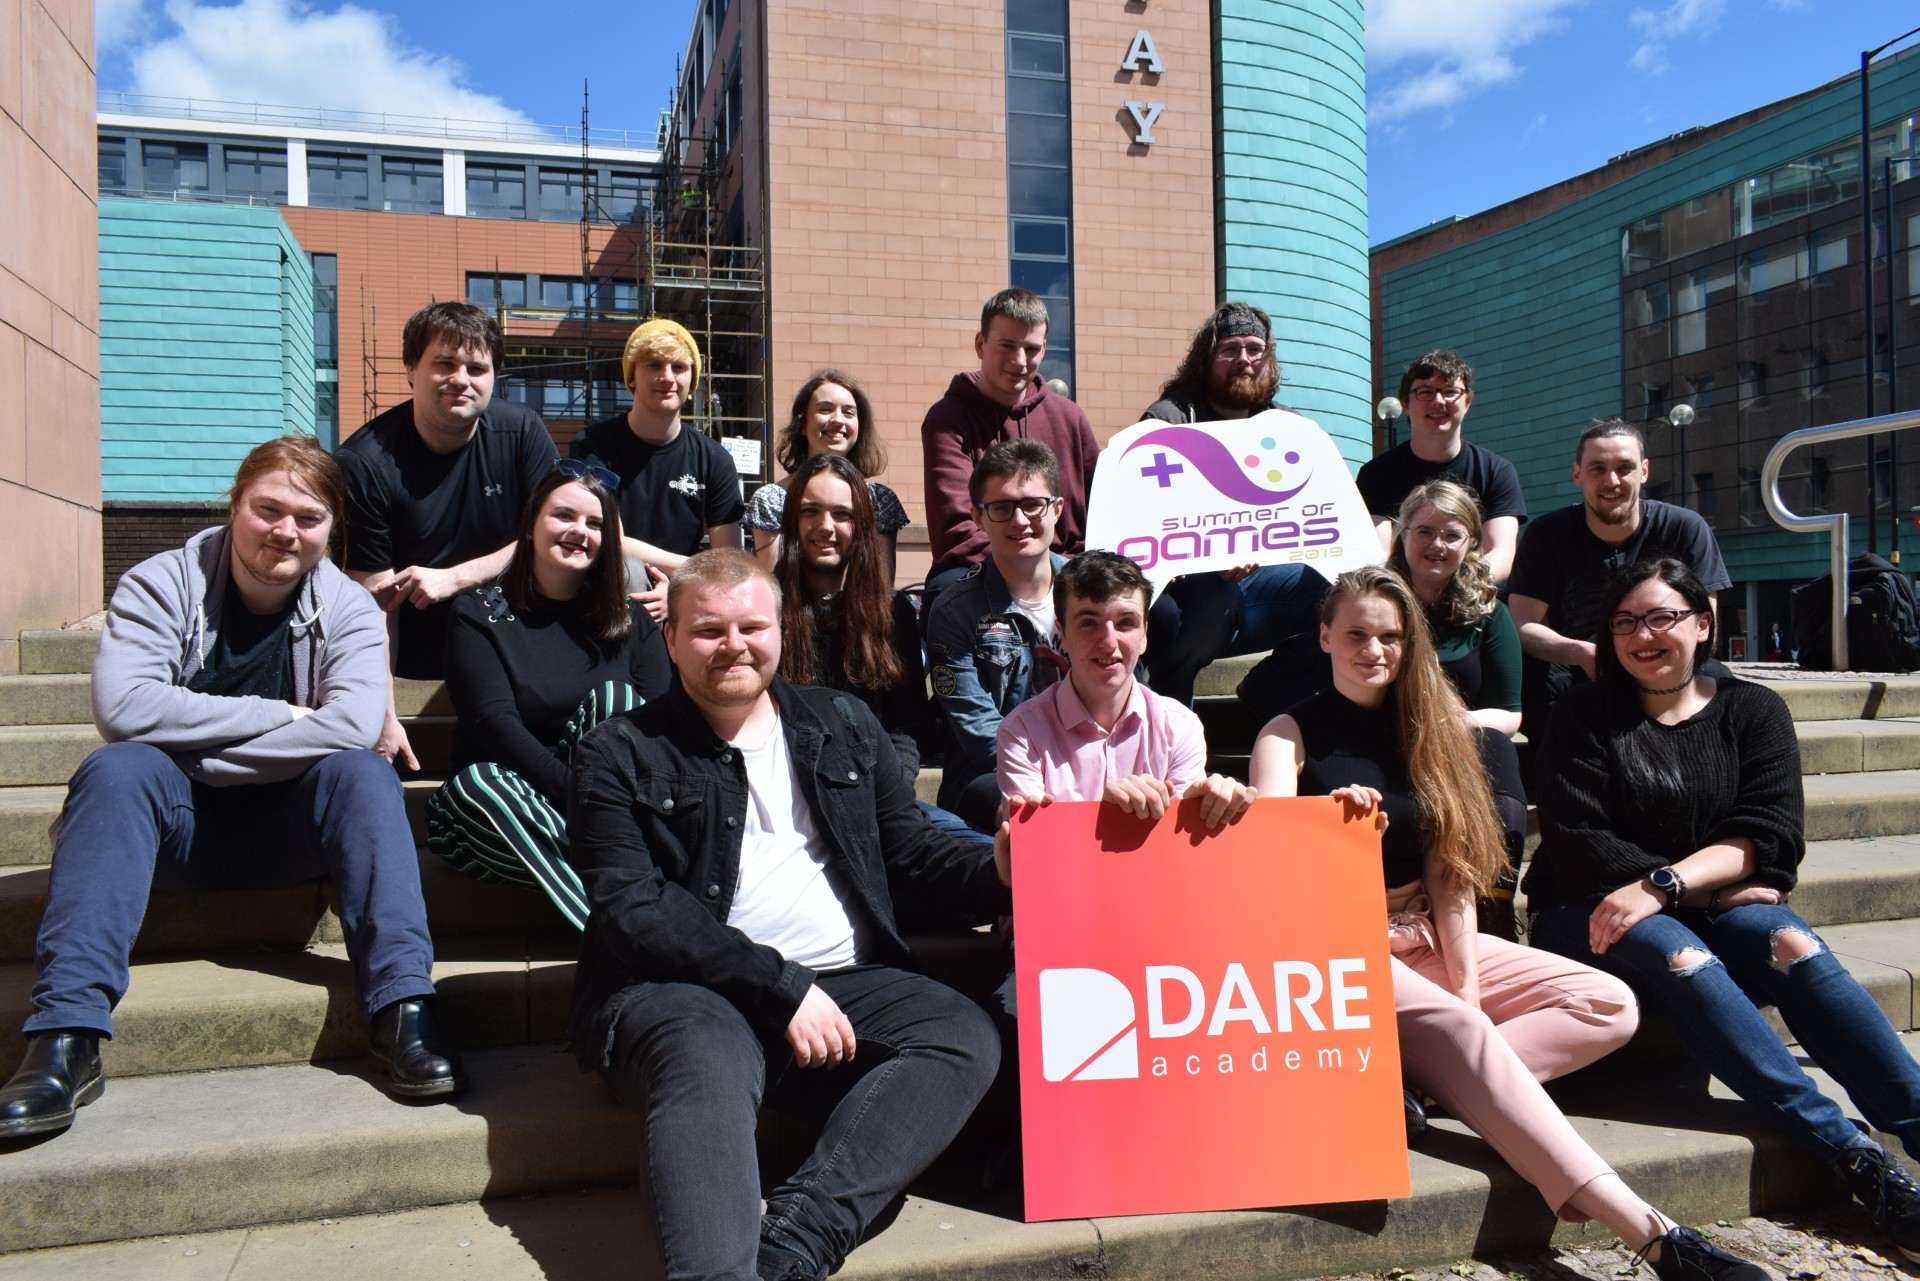 Dare Academy 'Class of 2019' revealed